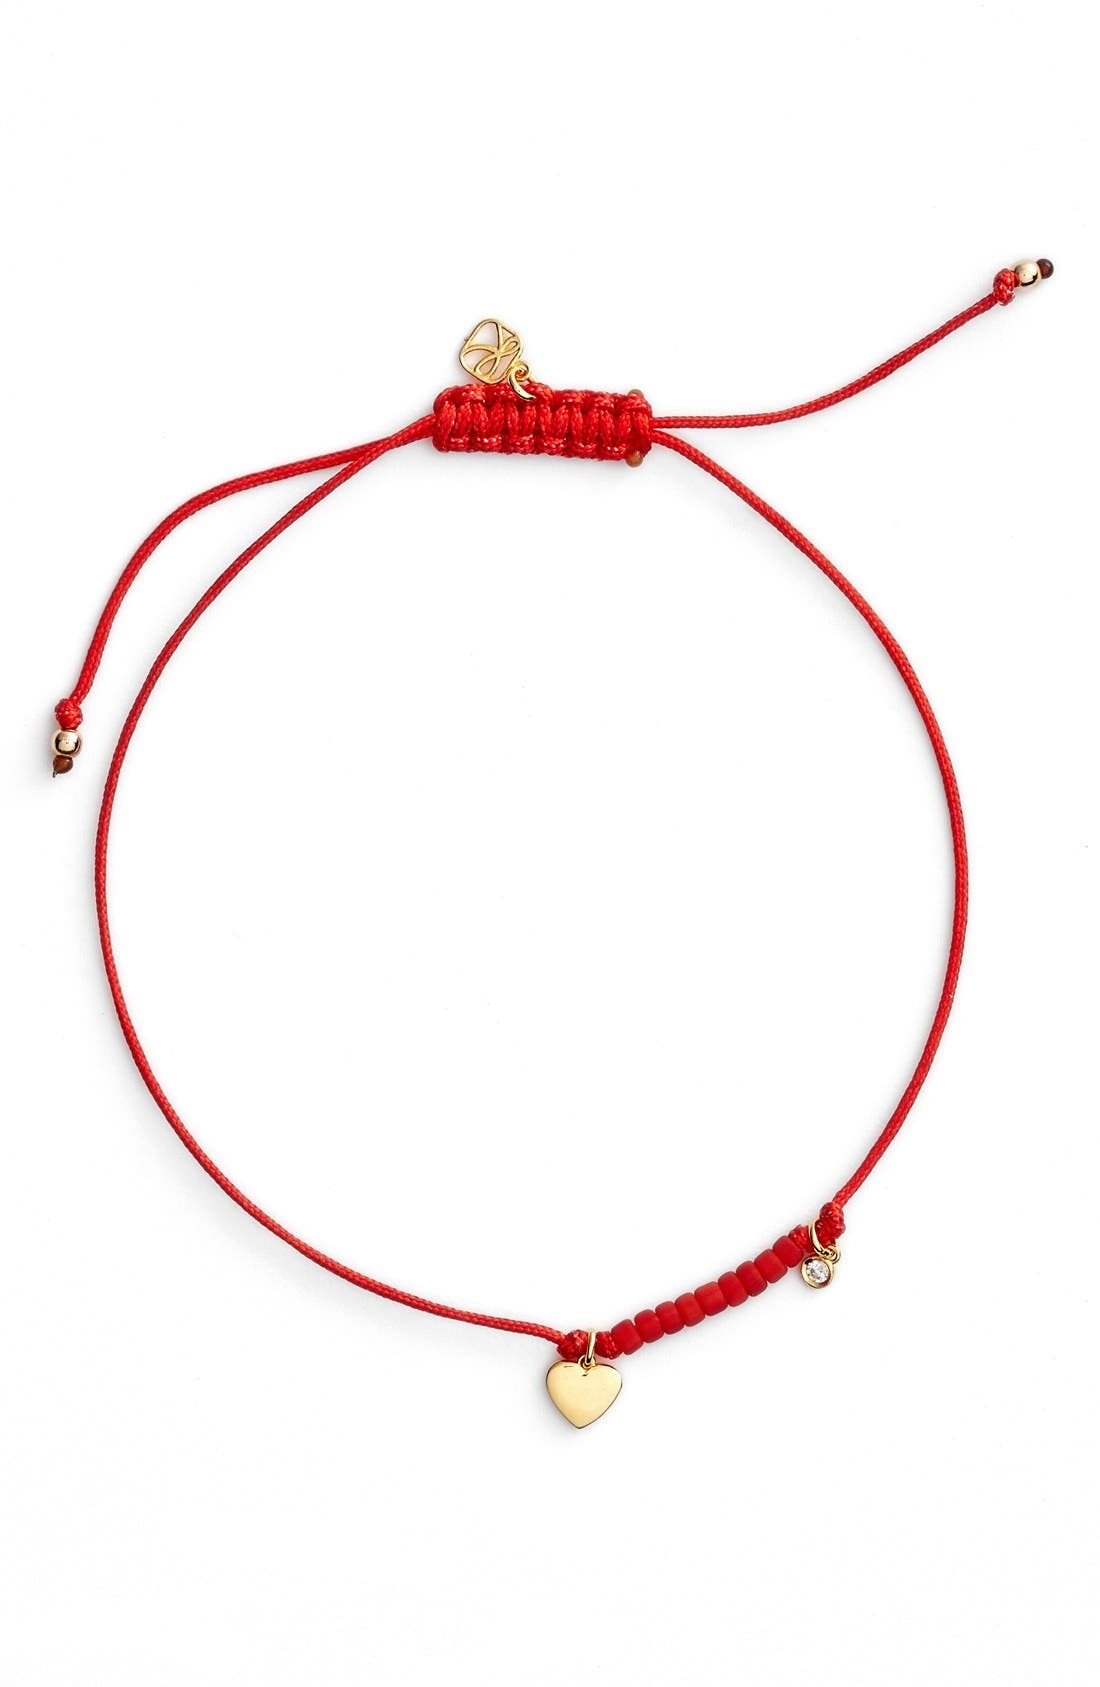 Diamond & Charm Friendship Bracelet,                             Main thumbnail 1, color,                             Gold/ Red